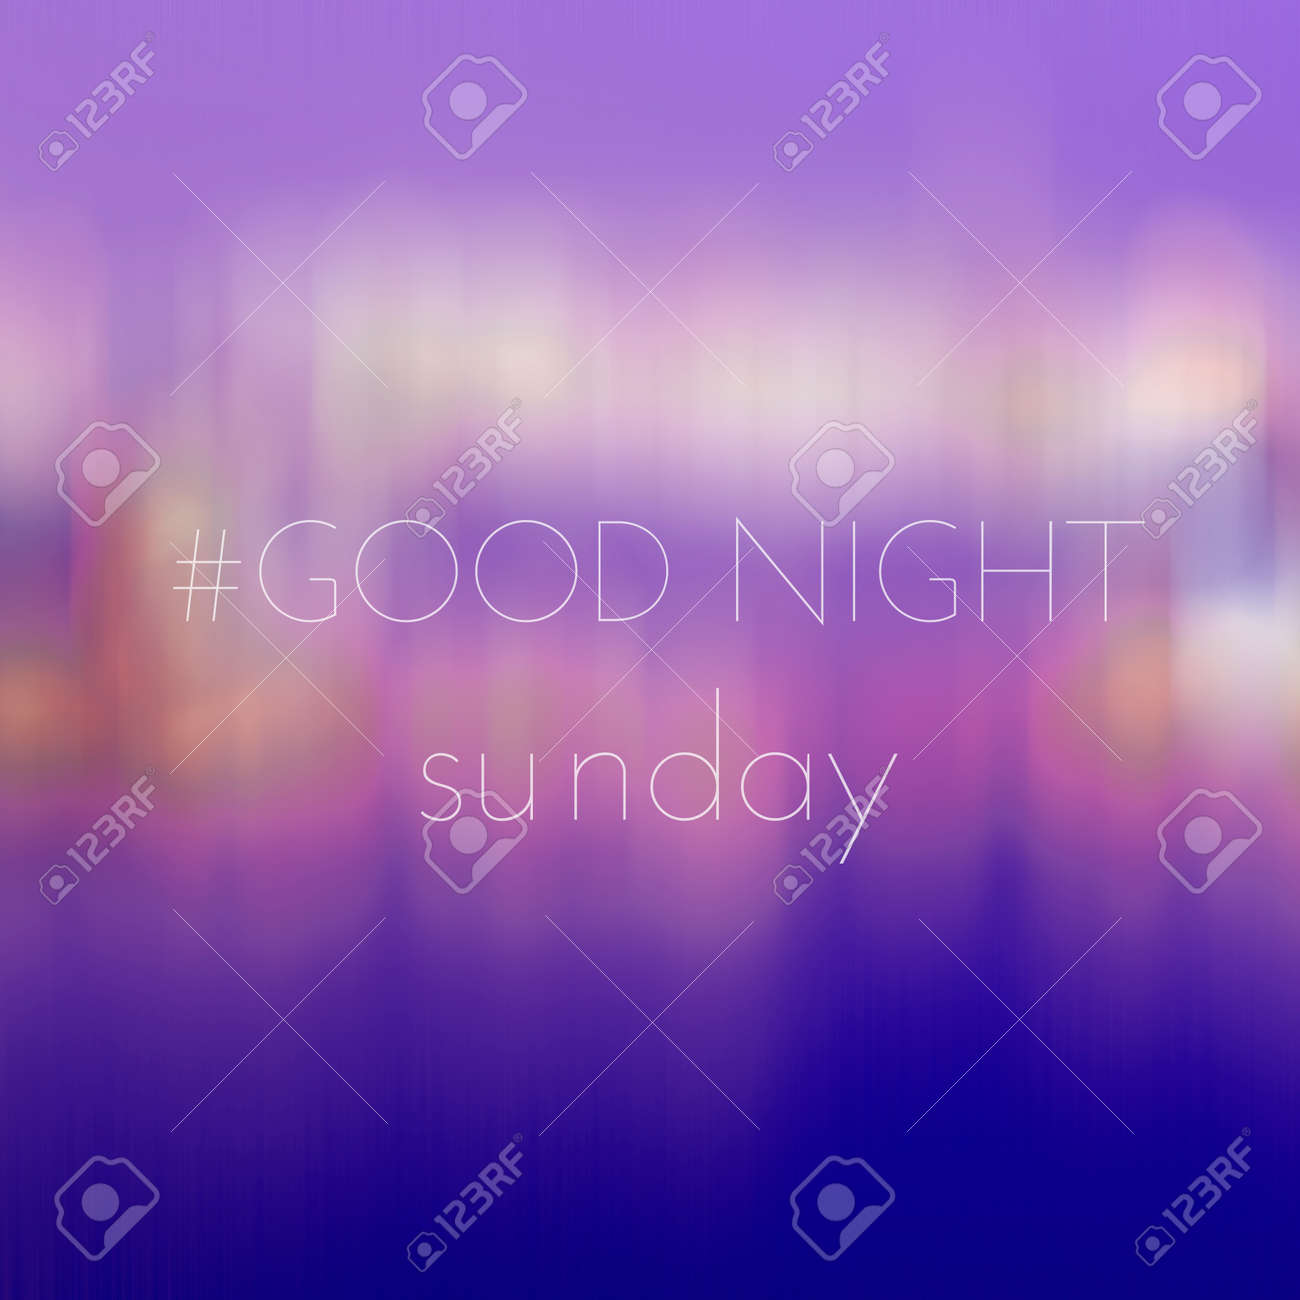 Good Night Sunday On Blur Bokeh Background Stock Photo Picture And